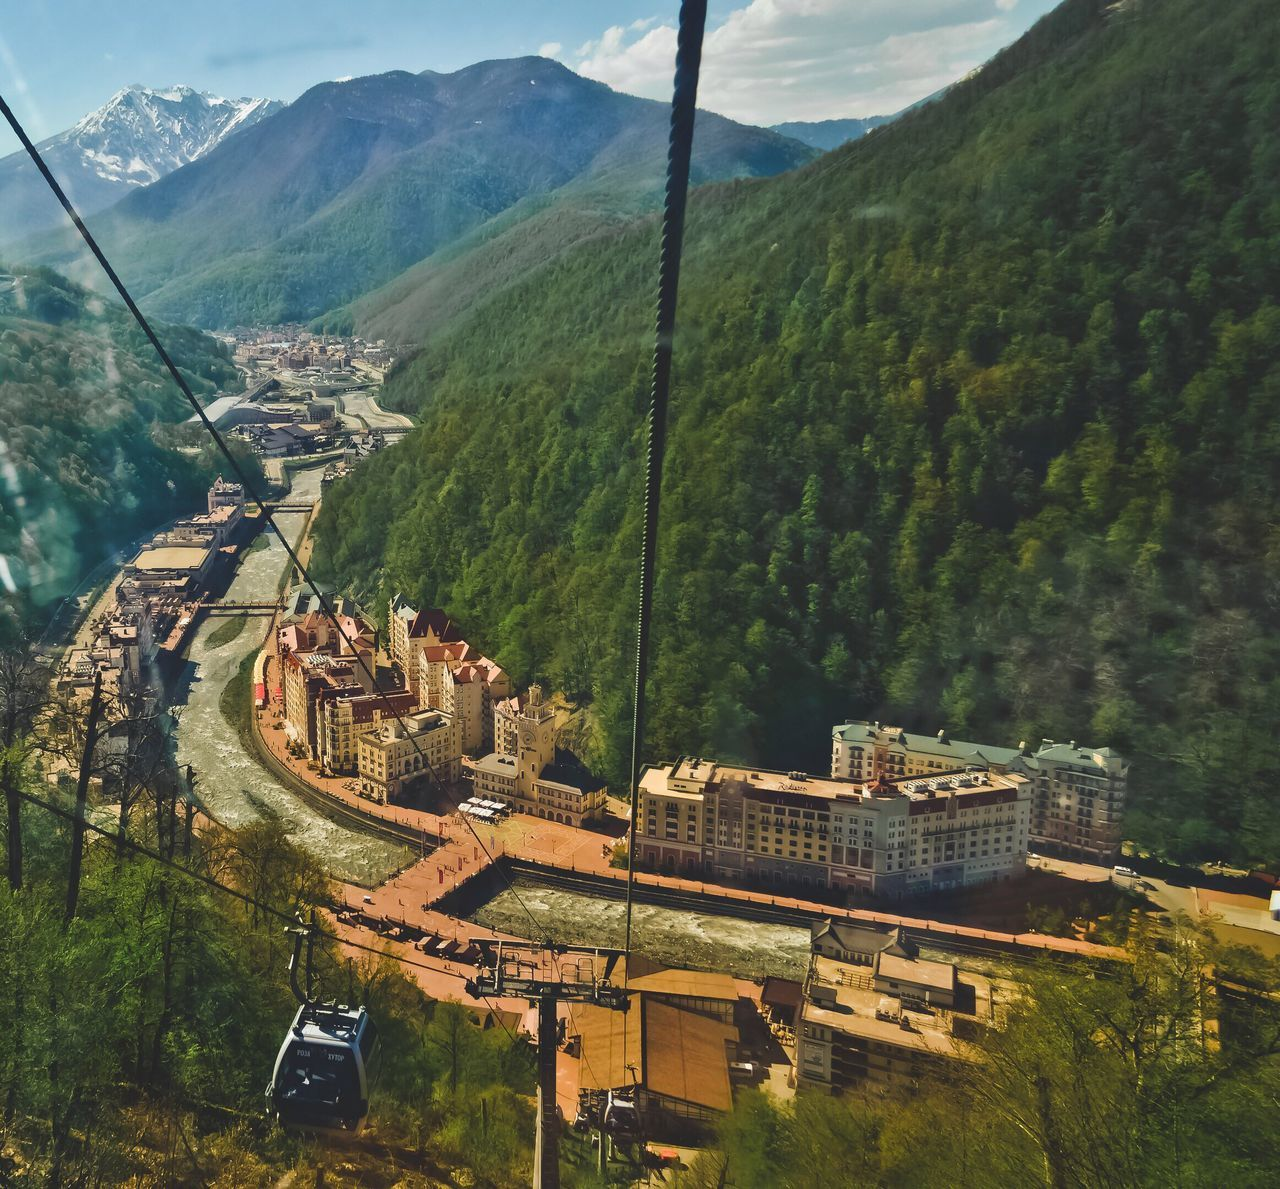 mountain, transportation, day, nature, outdoors, mode of transport, high angle view, beauty in nature, scenics, no people, landscape, cable, mountain range, tree, sky, overhead cable car, architecture, ski lift